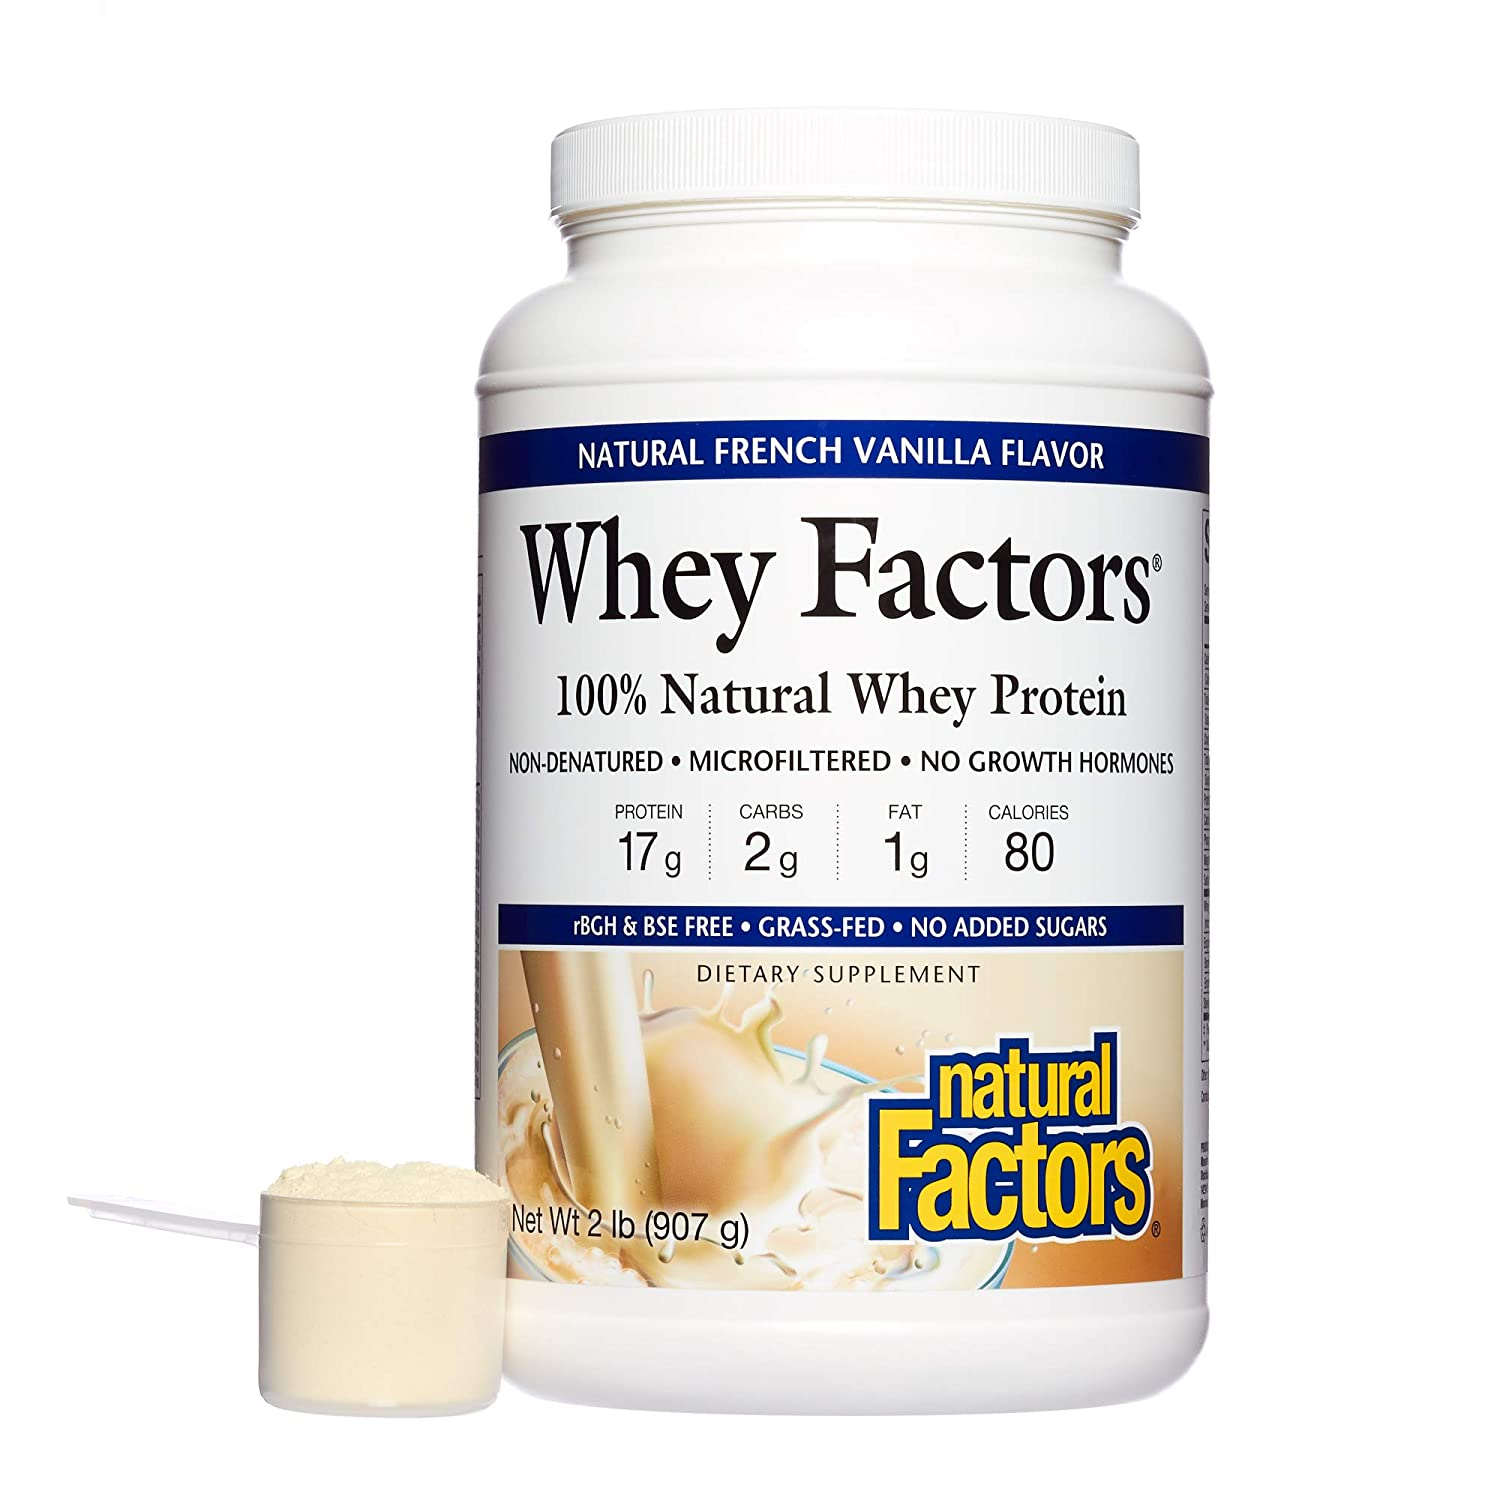 100% Natural Whey Protein - Whey Factors Natural French Vanilla 2 lbs: Amazon.es: Salud y cuidado personal